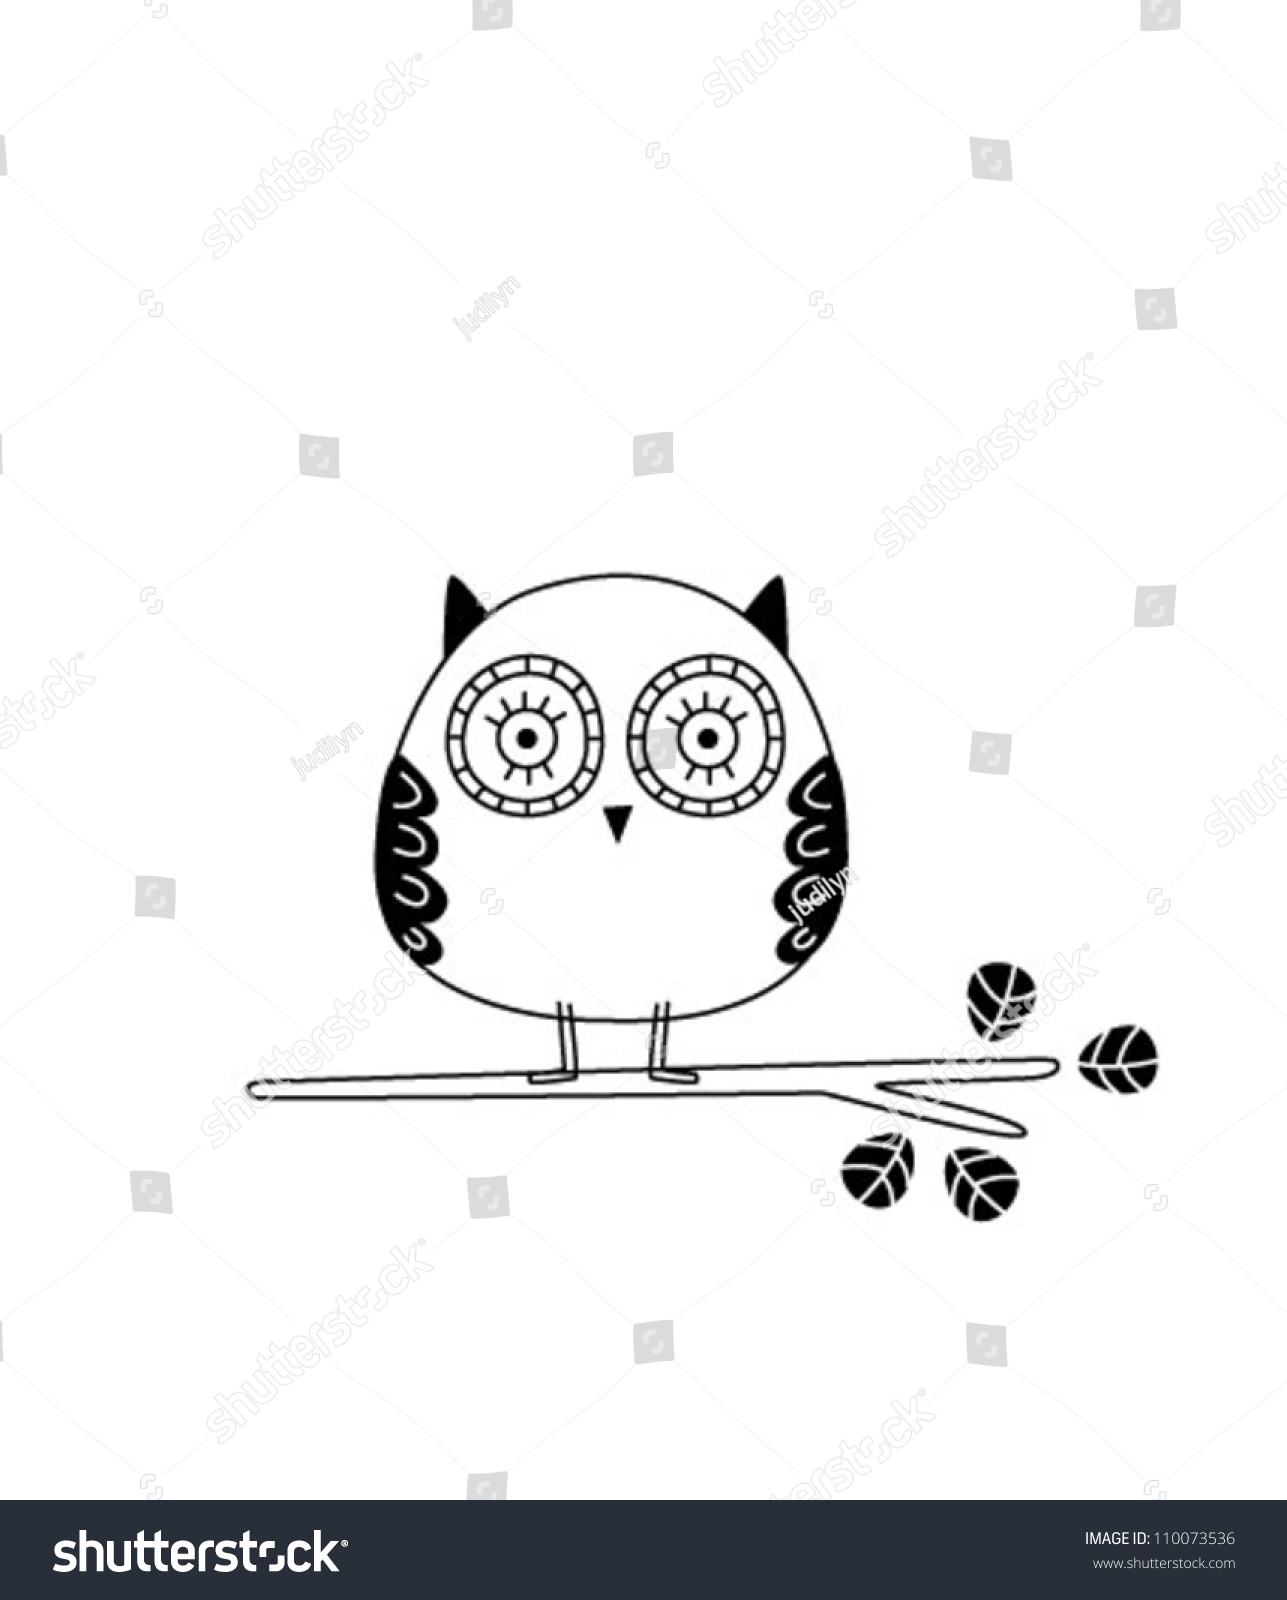 Cute Owl Wallpaper Stock Vector Royalty Free 110073536